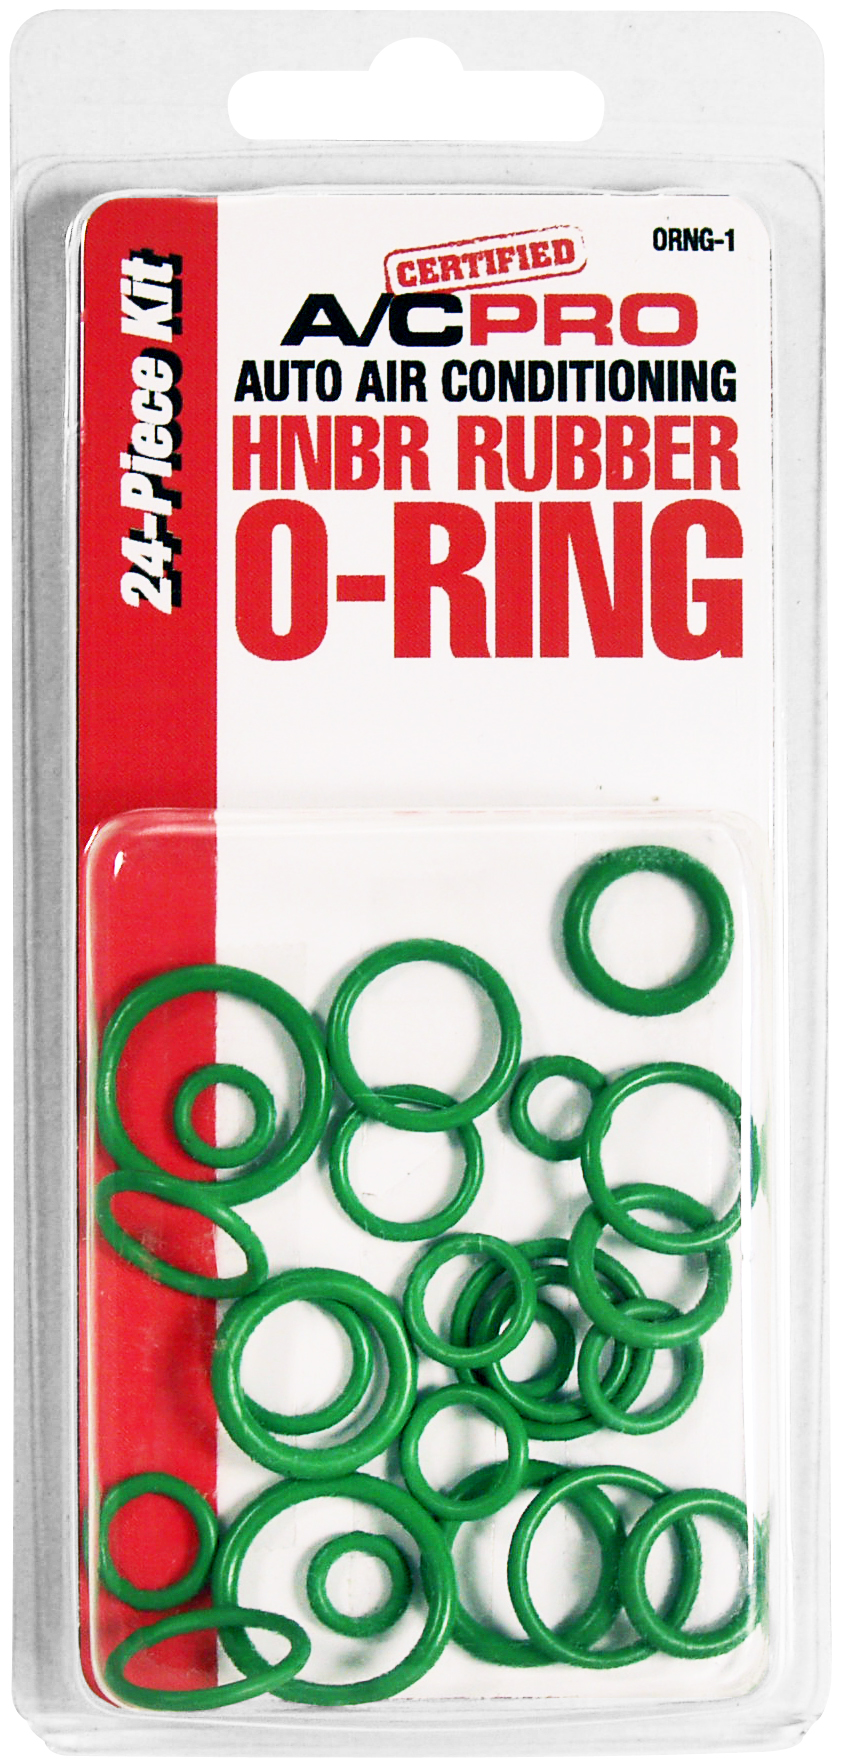 ORNG-1 Interdynamics Air Conditioner O-Ring Use With R-12 And R-134a